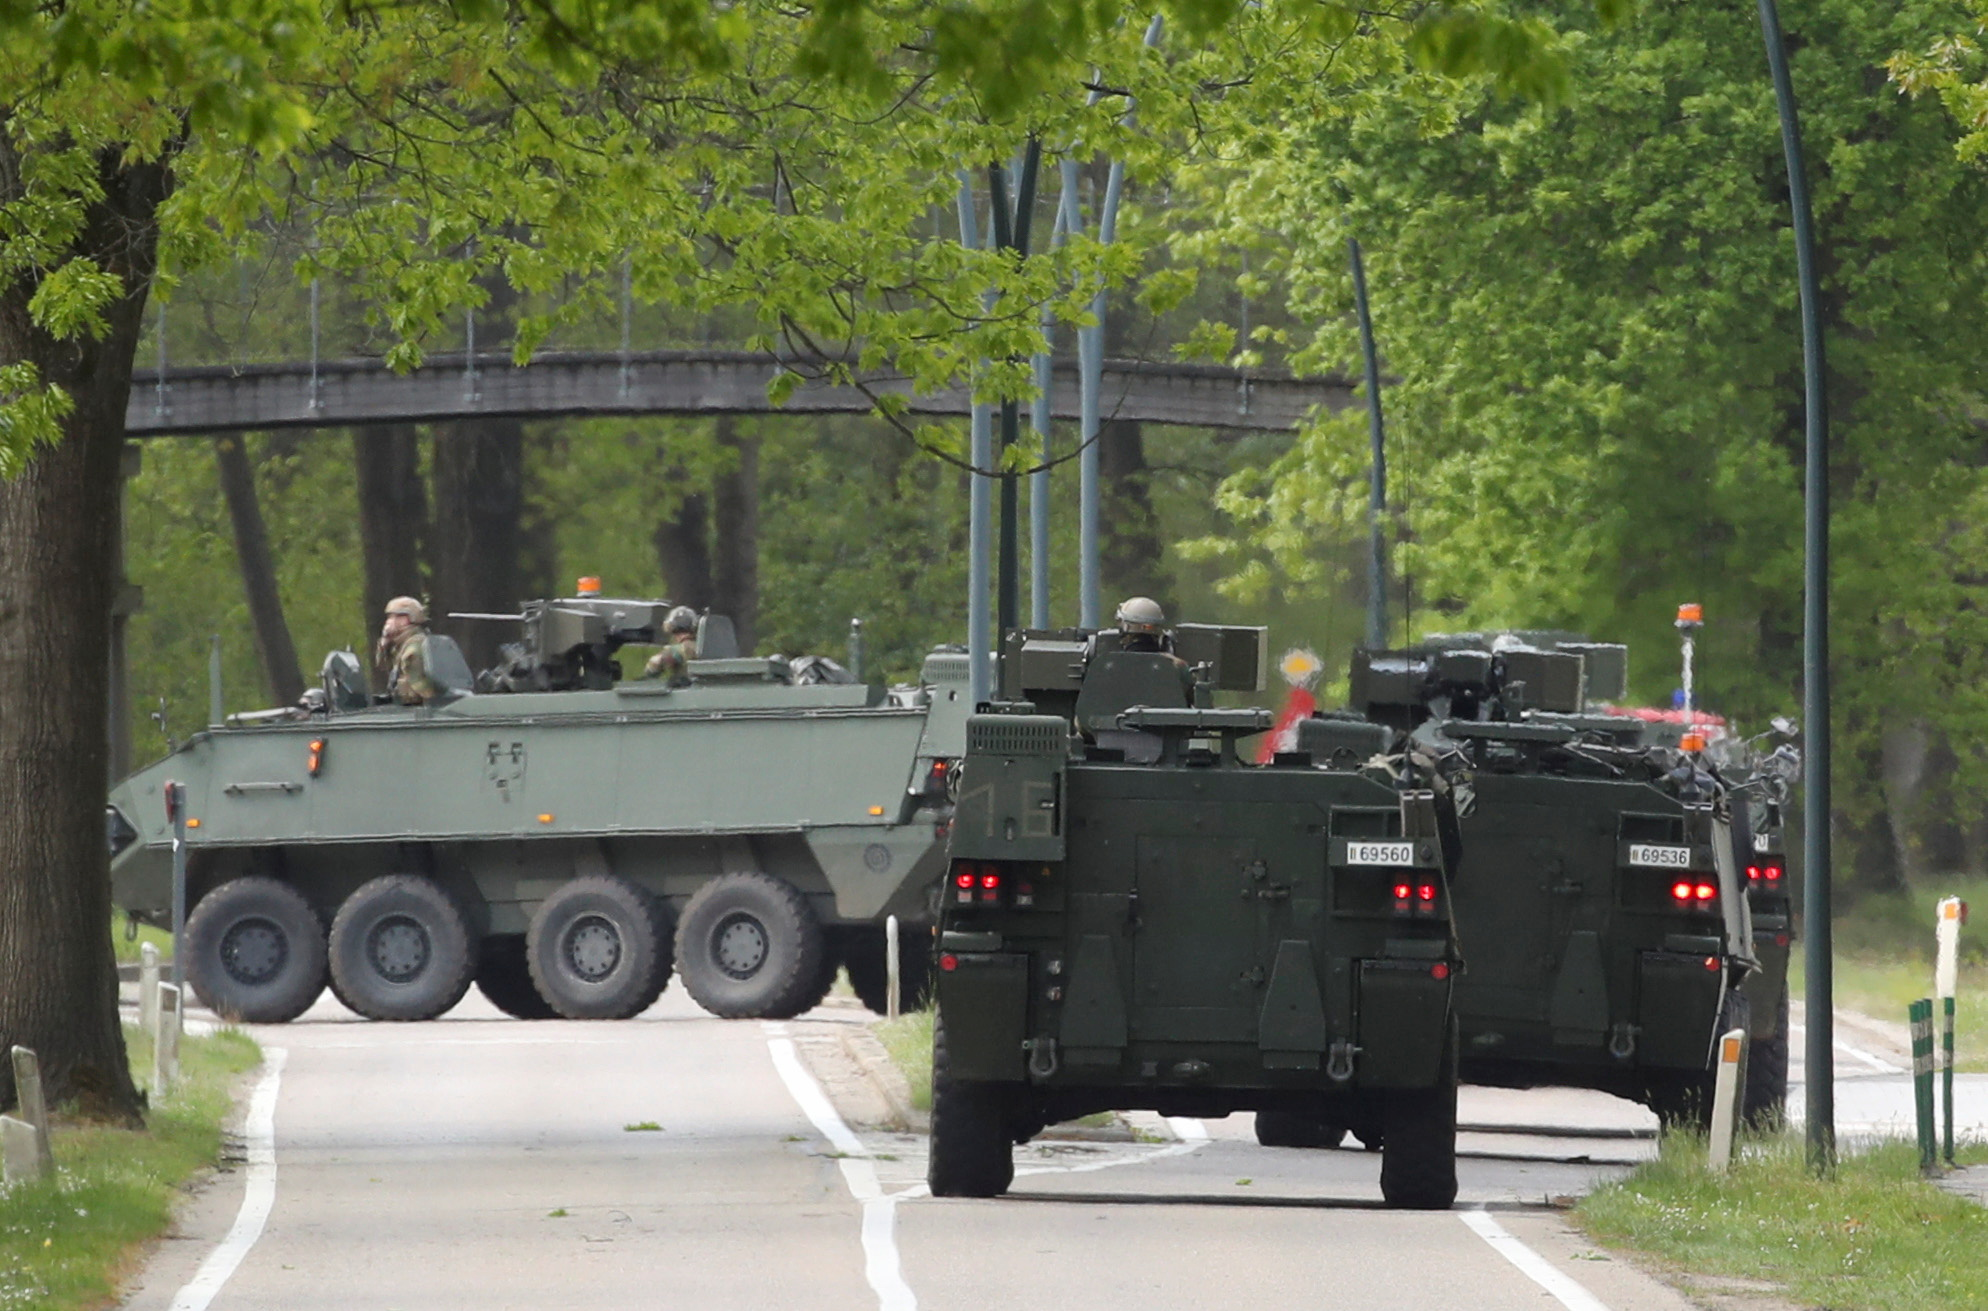 Belgian army members arrive in armoured vehicles at National Park Hoge Kempen while scouring to capture Belgian Jurgen Conings, a soldier who disappeared after threatening a virologist supportive of coronavirus disease (COVID-19) vaccines and coronavirus restrictions, in Maasmechelen, Belgium May 21, 2021. REUTERS/Yves Herman